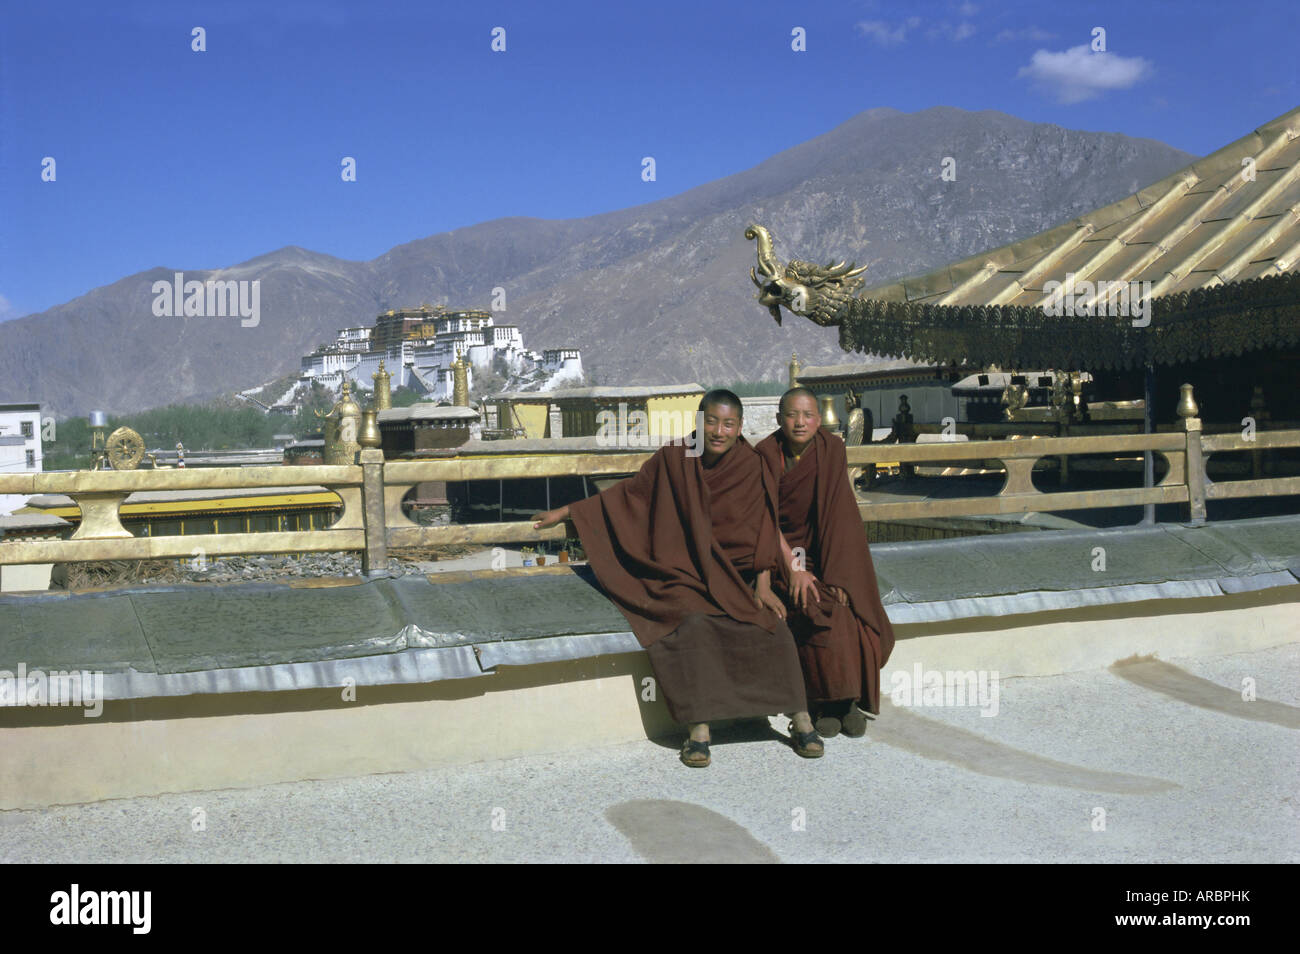 Two Tibetan Buddhist monks at Jokhang temple, with the Potala palace behind, Lhasa, Tibet, China, Asia - Stock Image